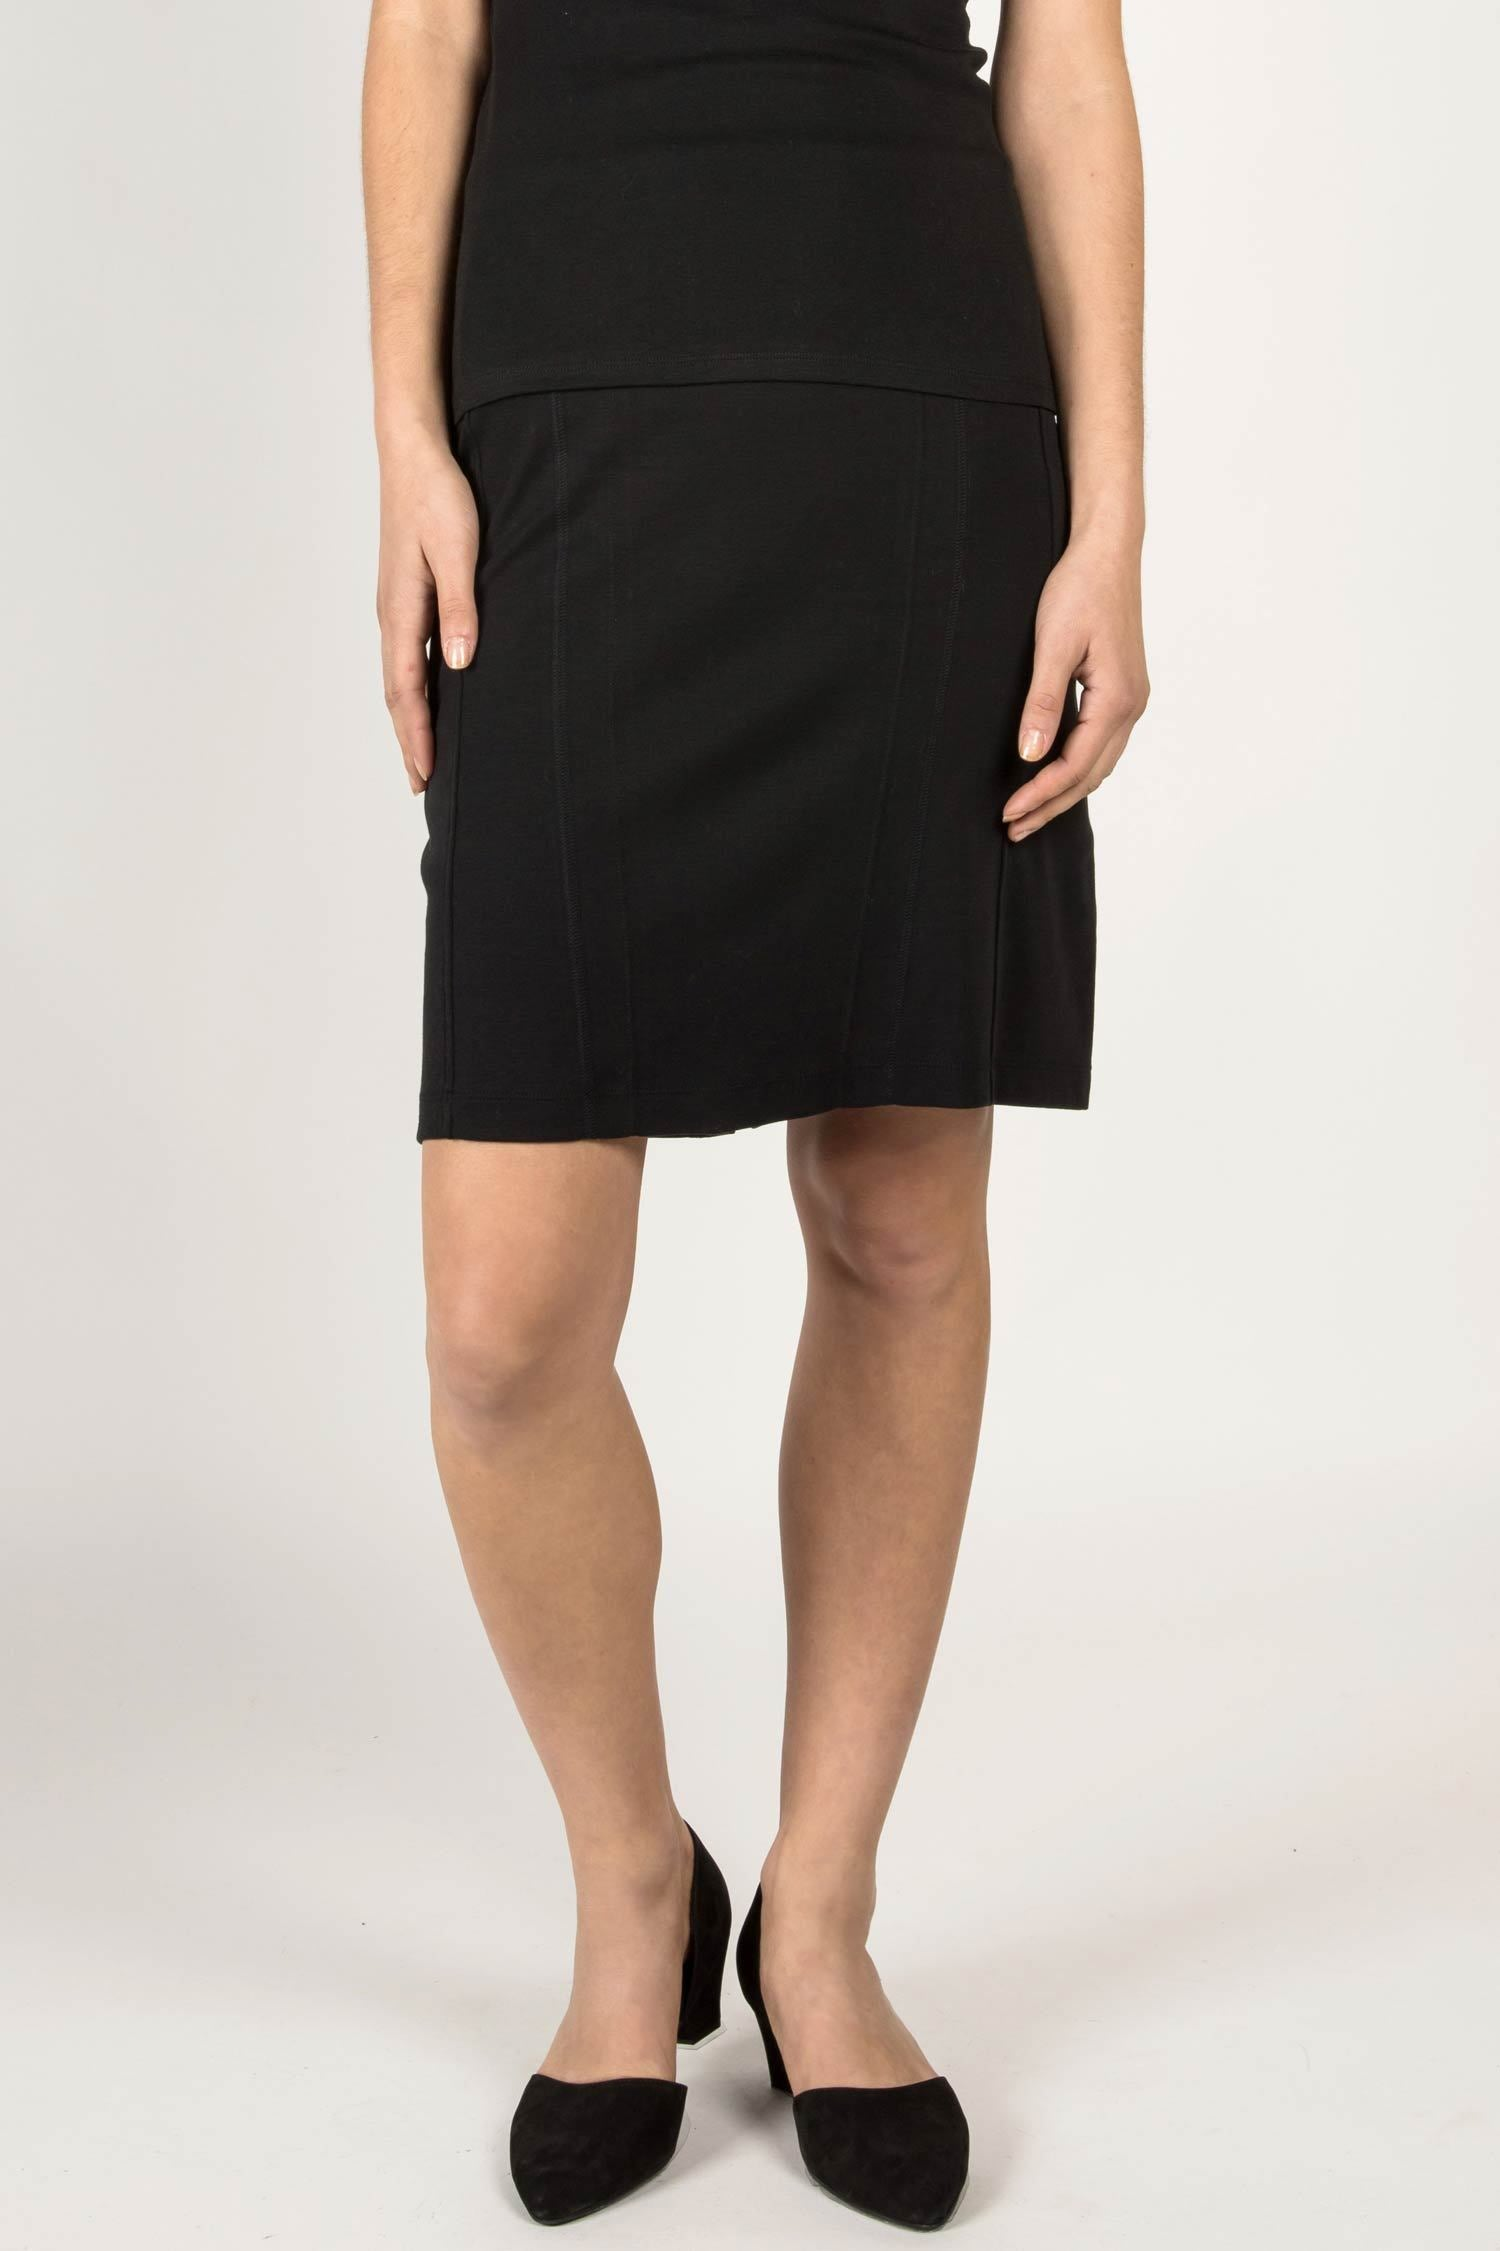 Womens Organic Cotton Skirt | Essential Pencil Skirt | Black